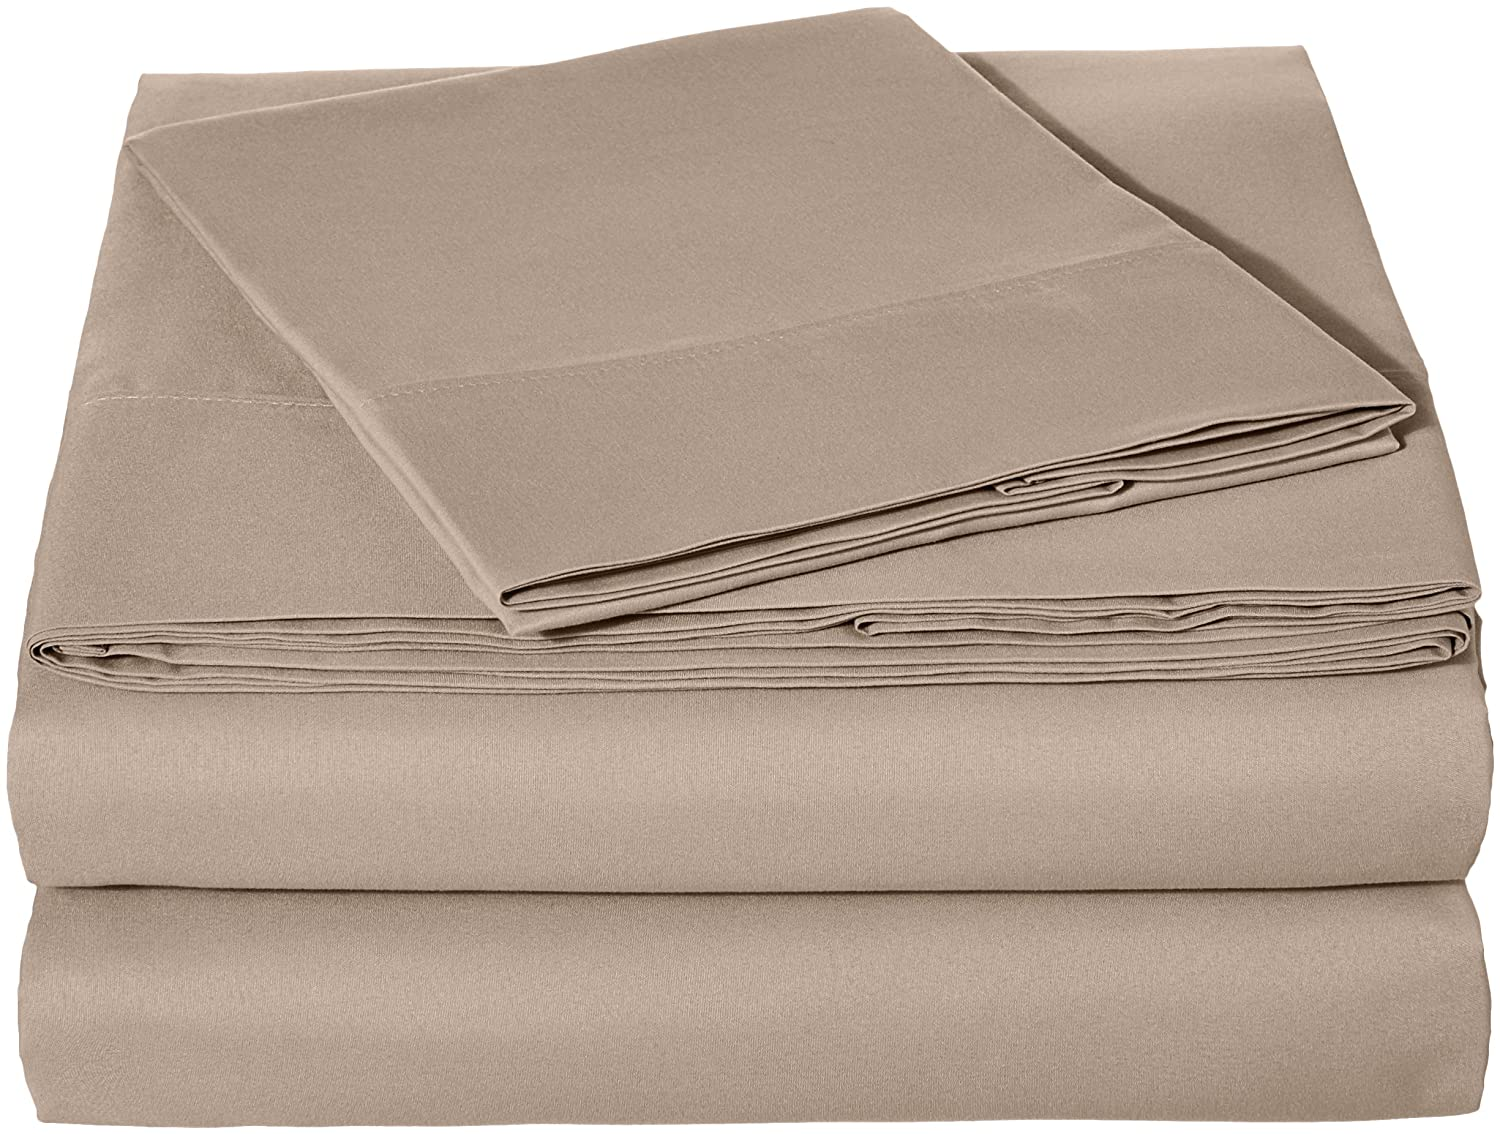 "AmazonBasics Lightweight Super Soft Easy Care Microfiber Sheet Set with 16"" Deep Pockets - Twin XL, Taupe"